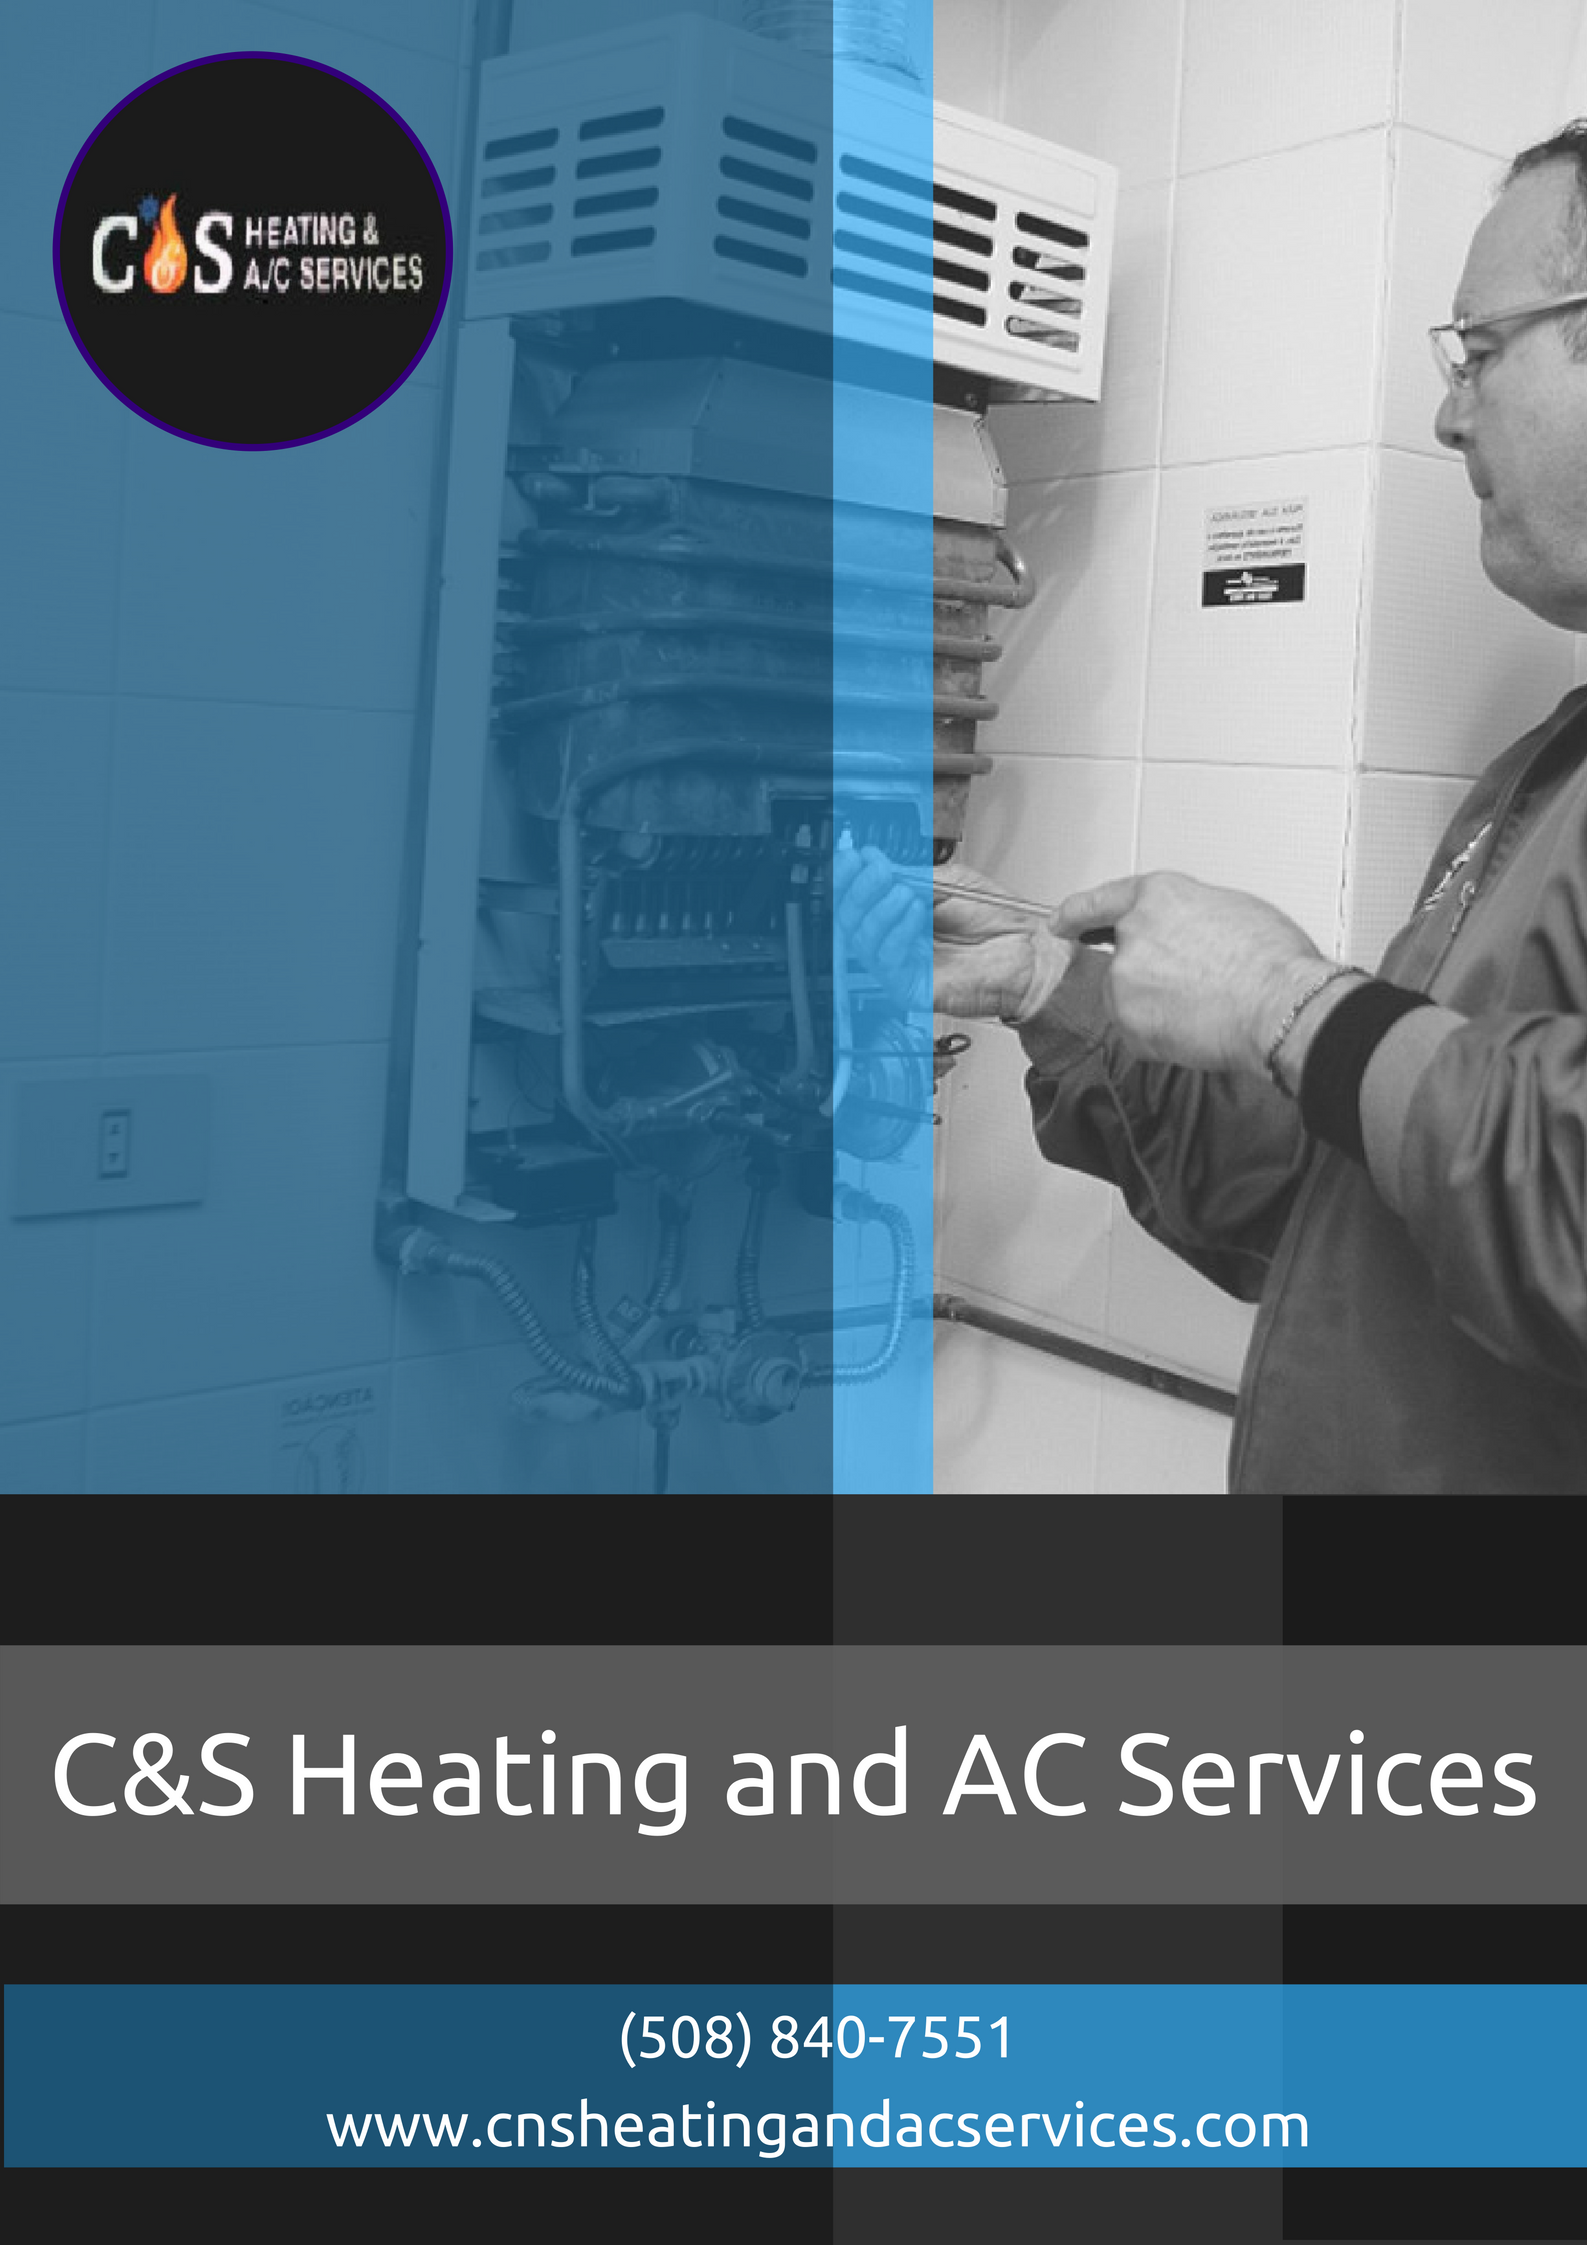 We Specialize In Hvac Contractor In Raynham Ma Air Conditioning Contractor In Raynham Ma Ducts And Vents Insta Hvac Services Hvac Contractor Heating Repair